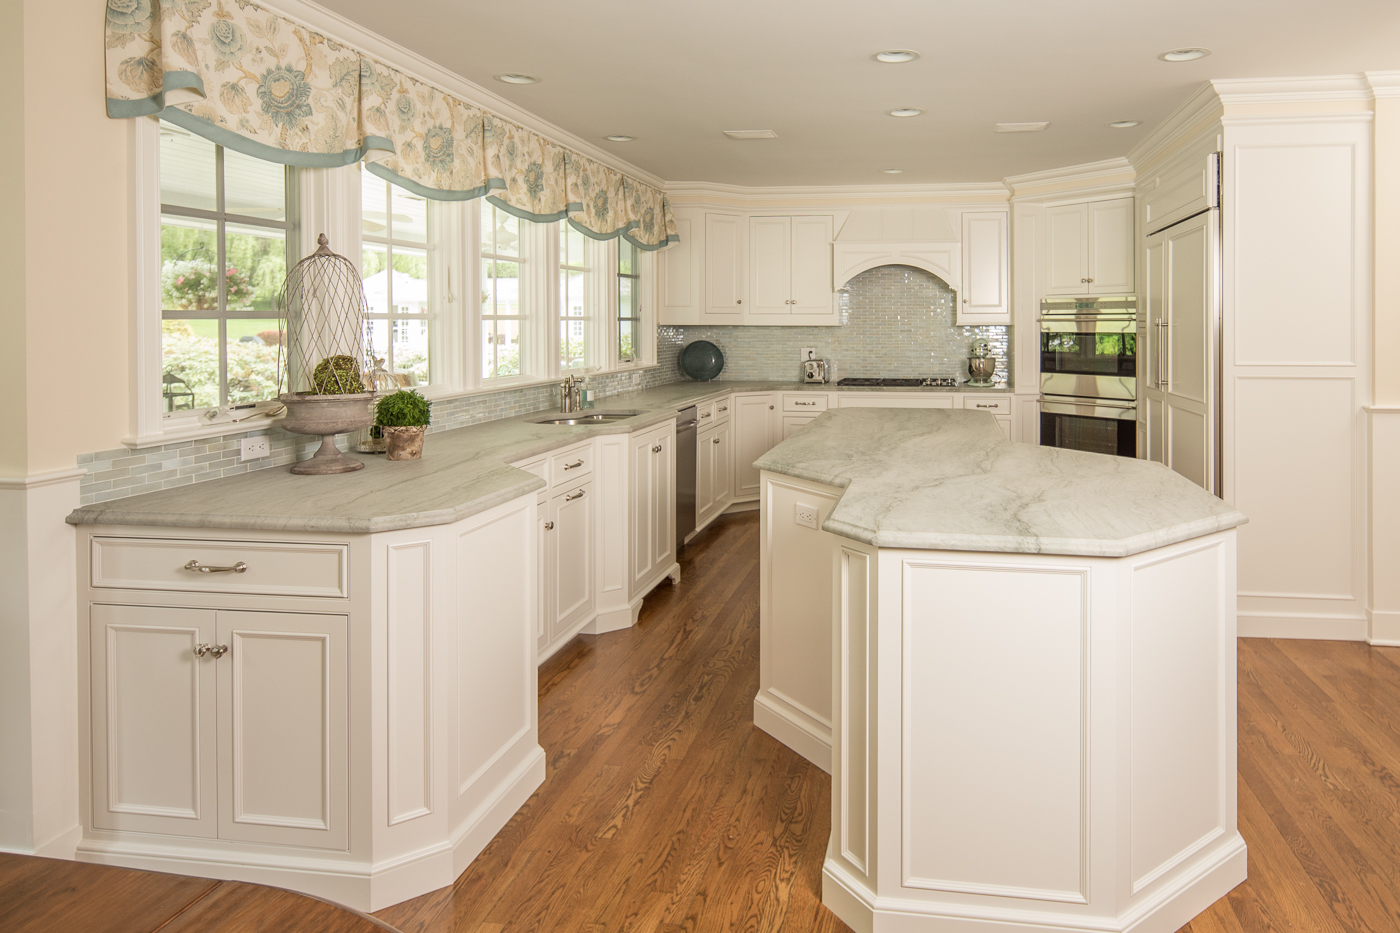 Kitchen Design Ct Stunning Ackley Cabinet Llc Design Ideas